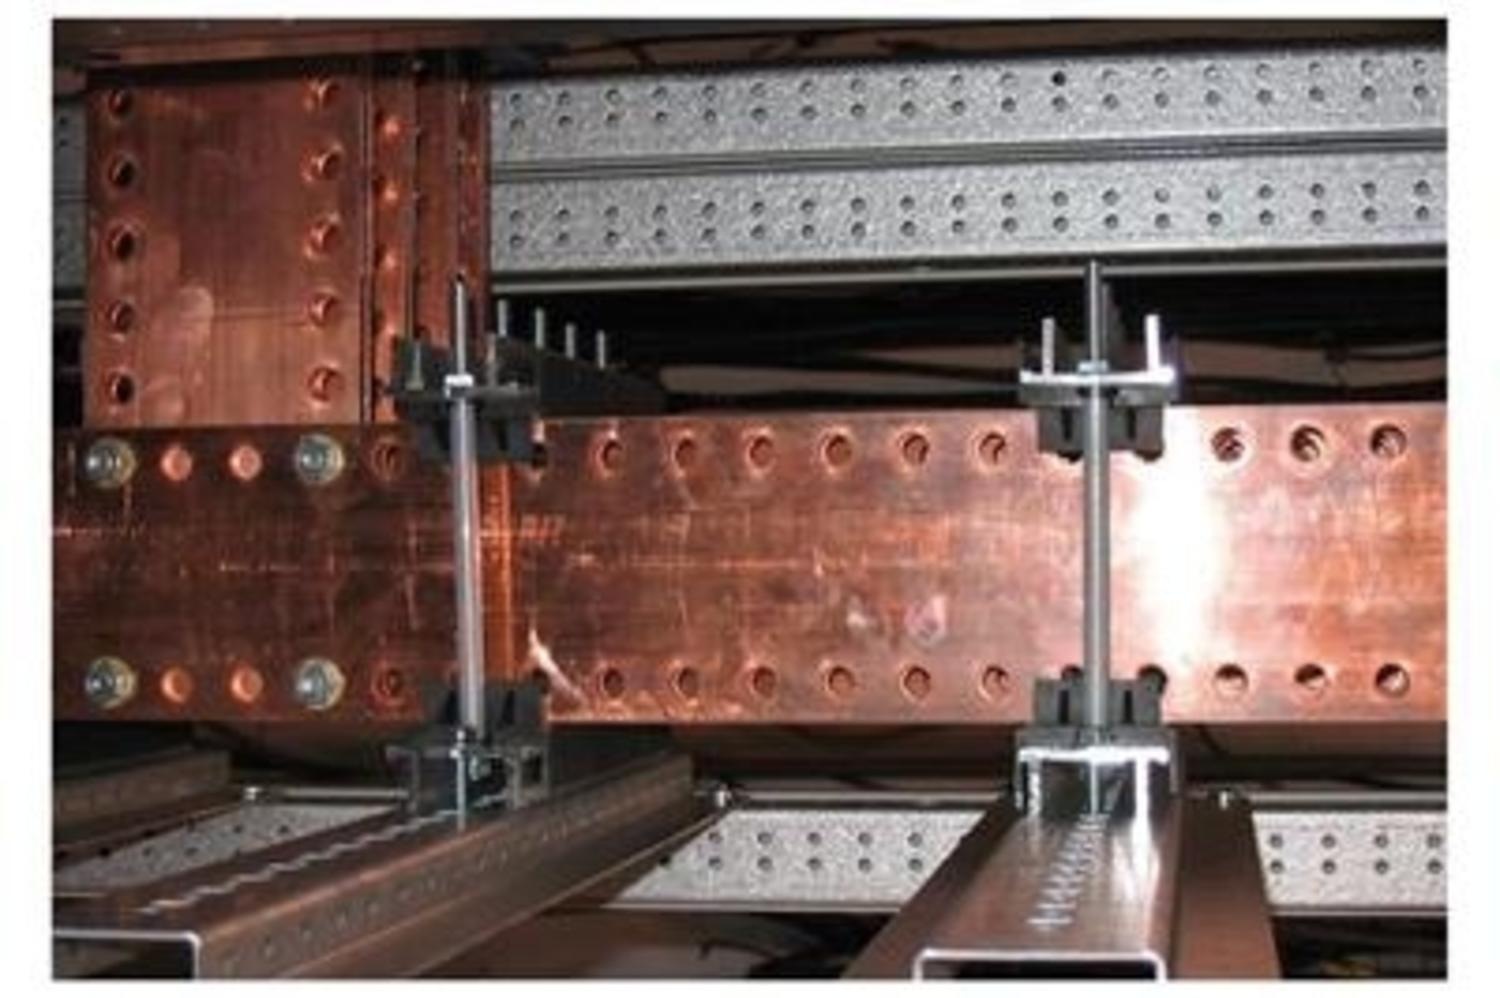 PREPUNCHED COPPER BARS